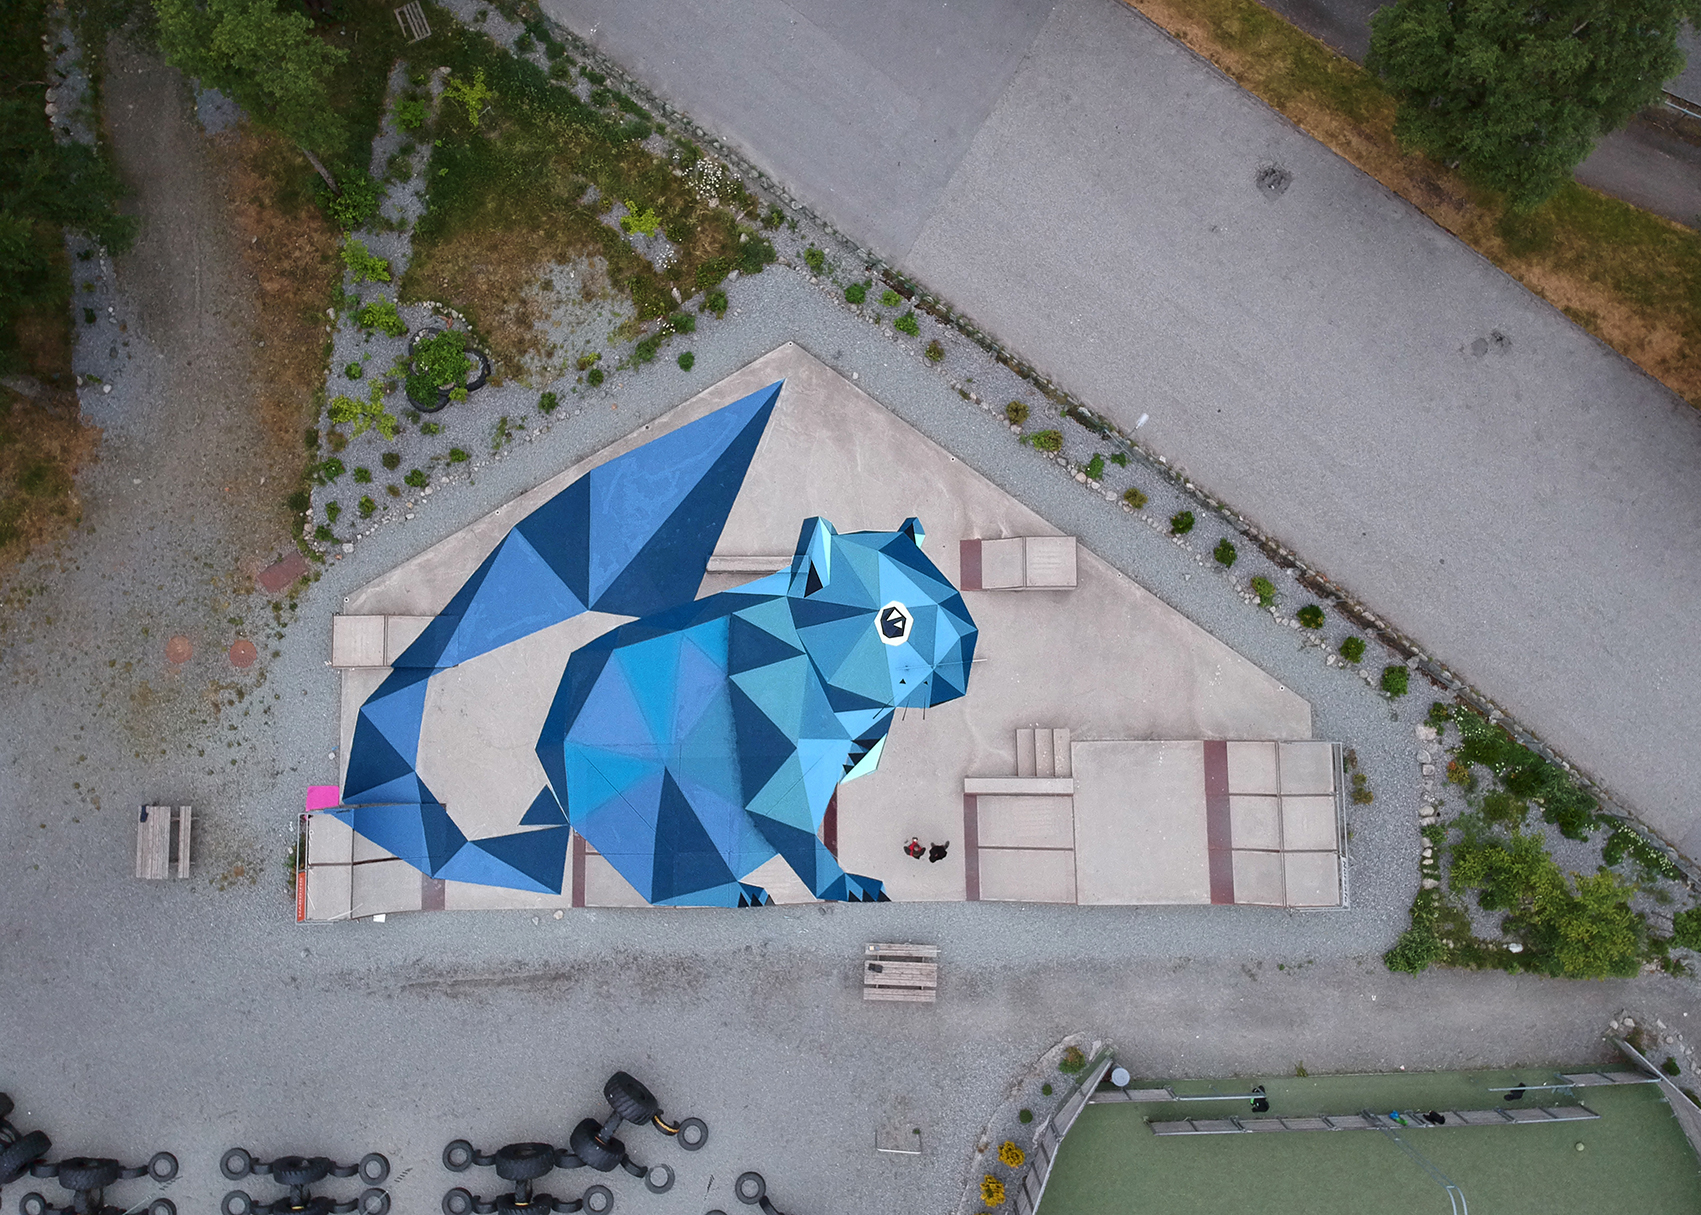 'The squirrel house' by TEN in Norway Artes & contextos Squirrels house 35mt